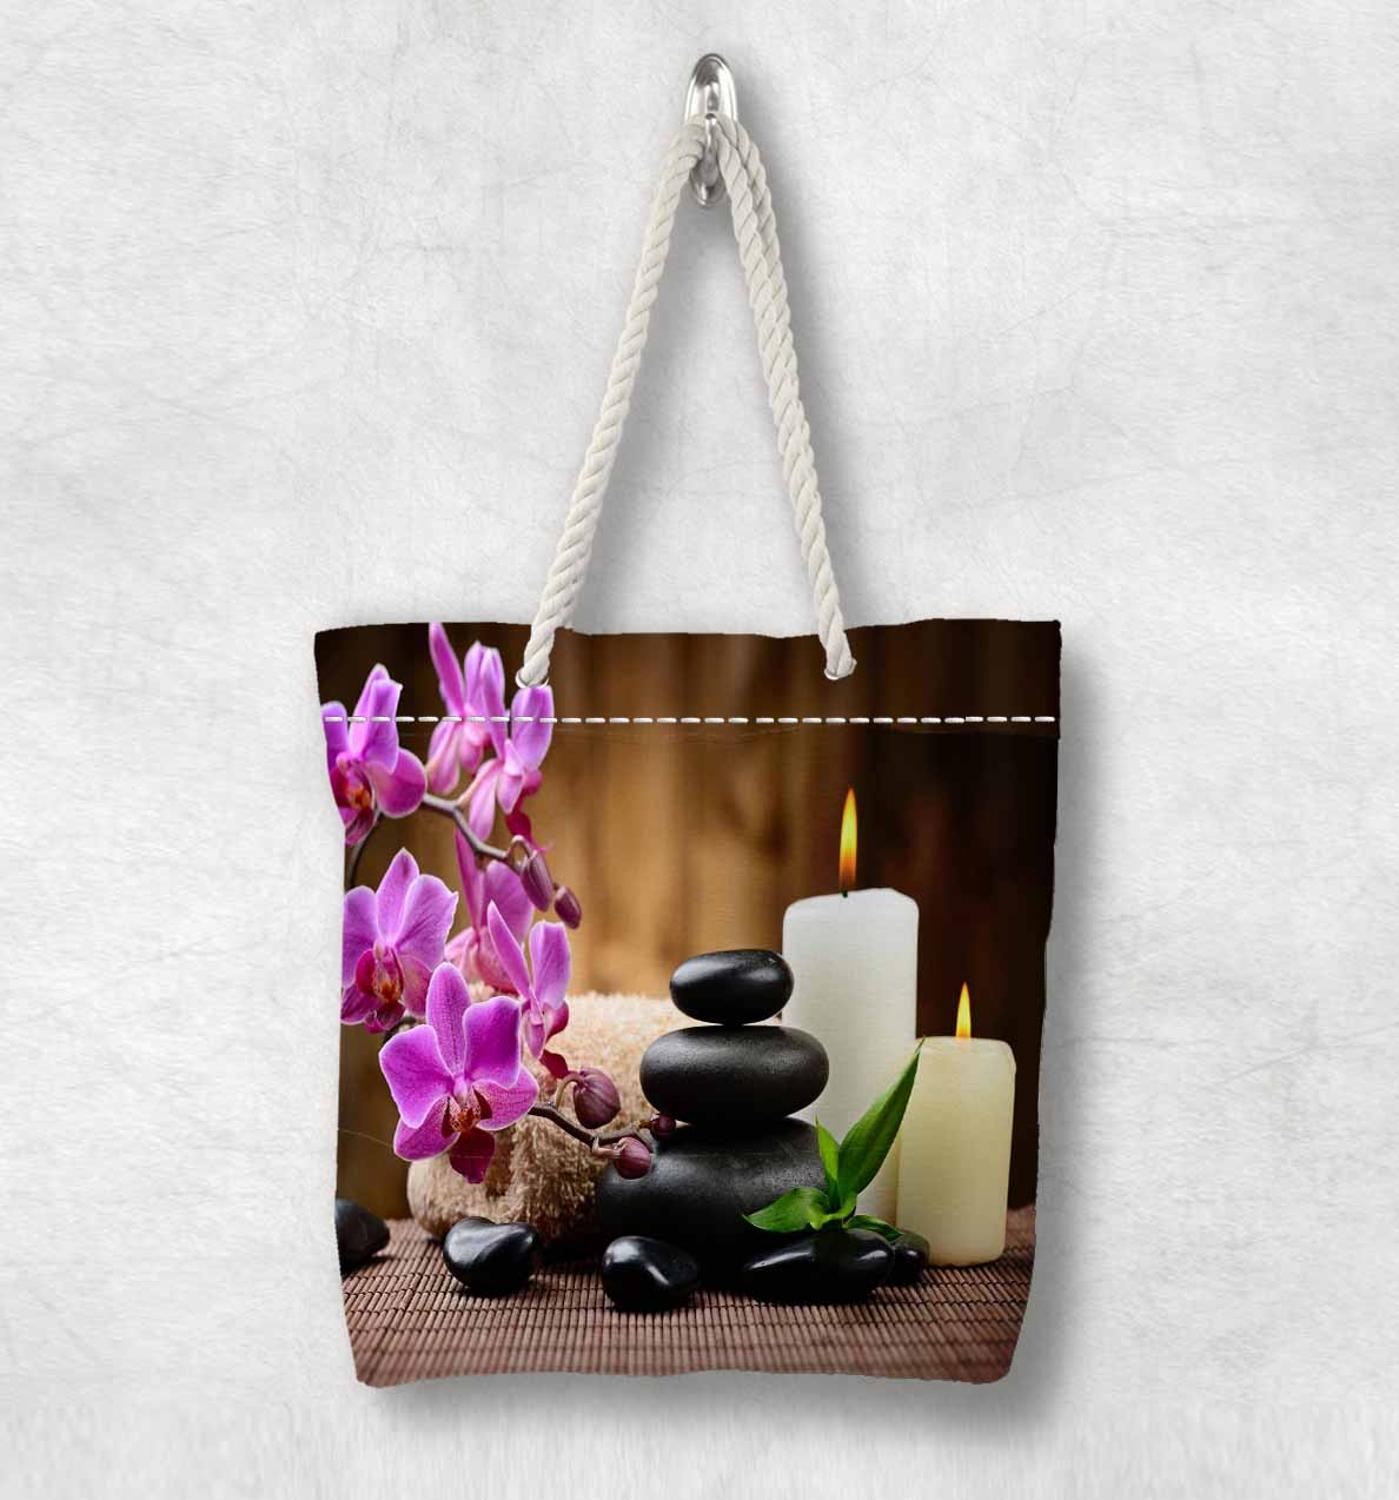 Else Purple Flowers Candle Spa Stones  New Fashion White Rope Handle Canvas Bag Cotton Canvas Zippered Tote Bag Shoulder Bag